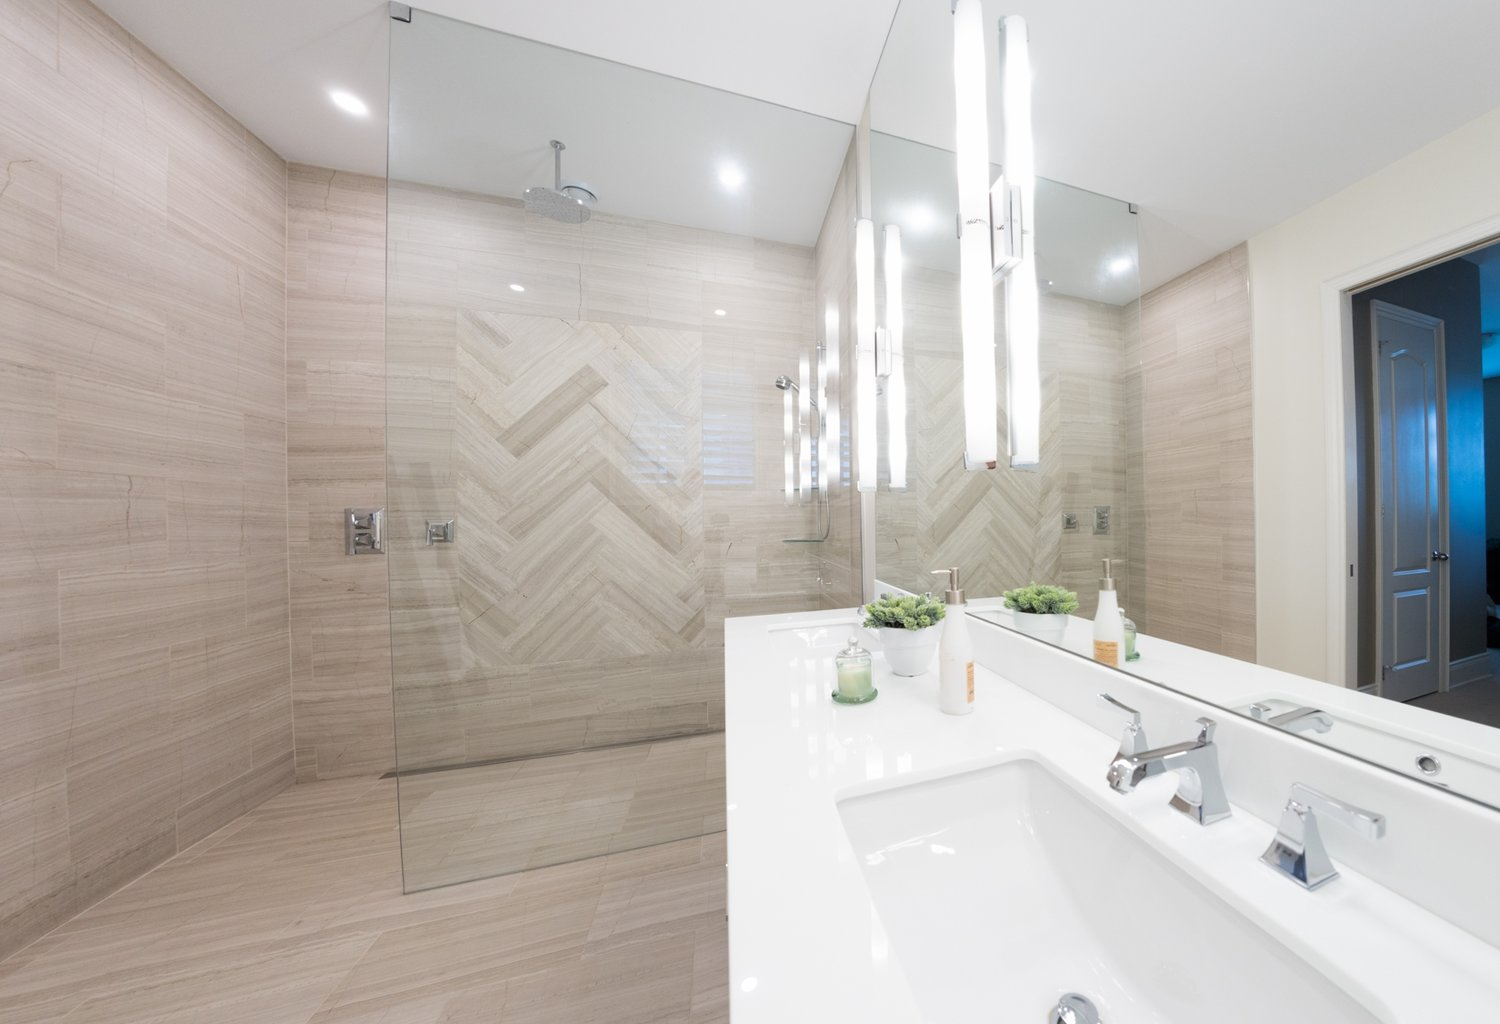 Bathrooms — BLISS HOME INNOVATIONS on bloomington home, once upon a time home, blissliving home, buffalo home, avon home, nail it home,